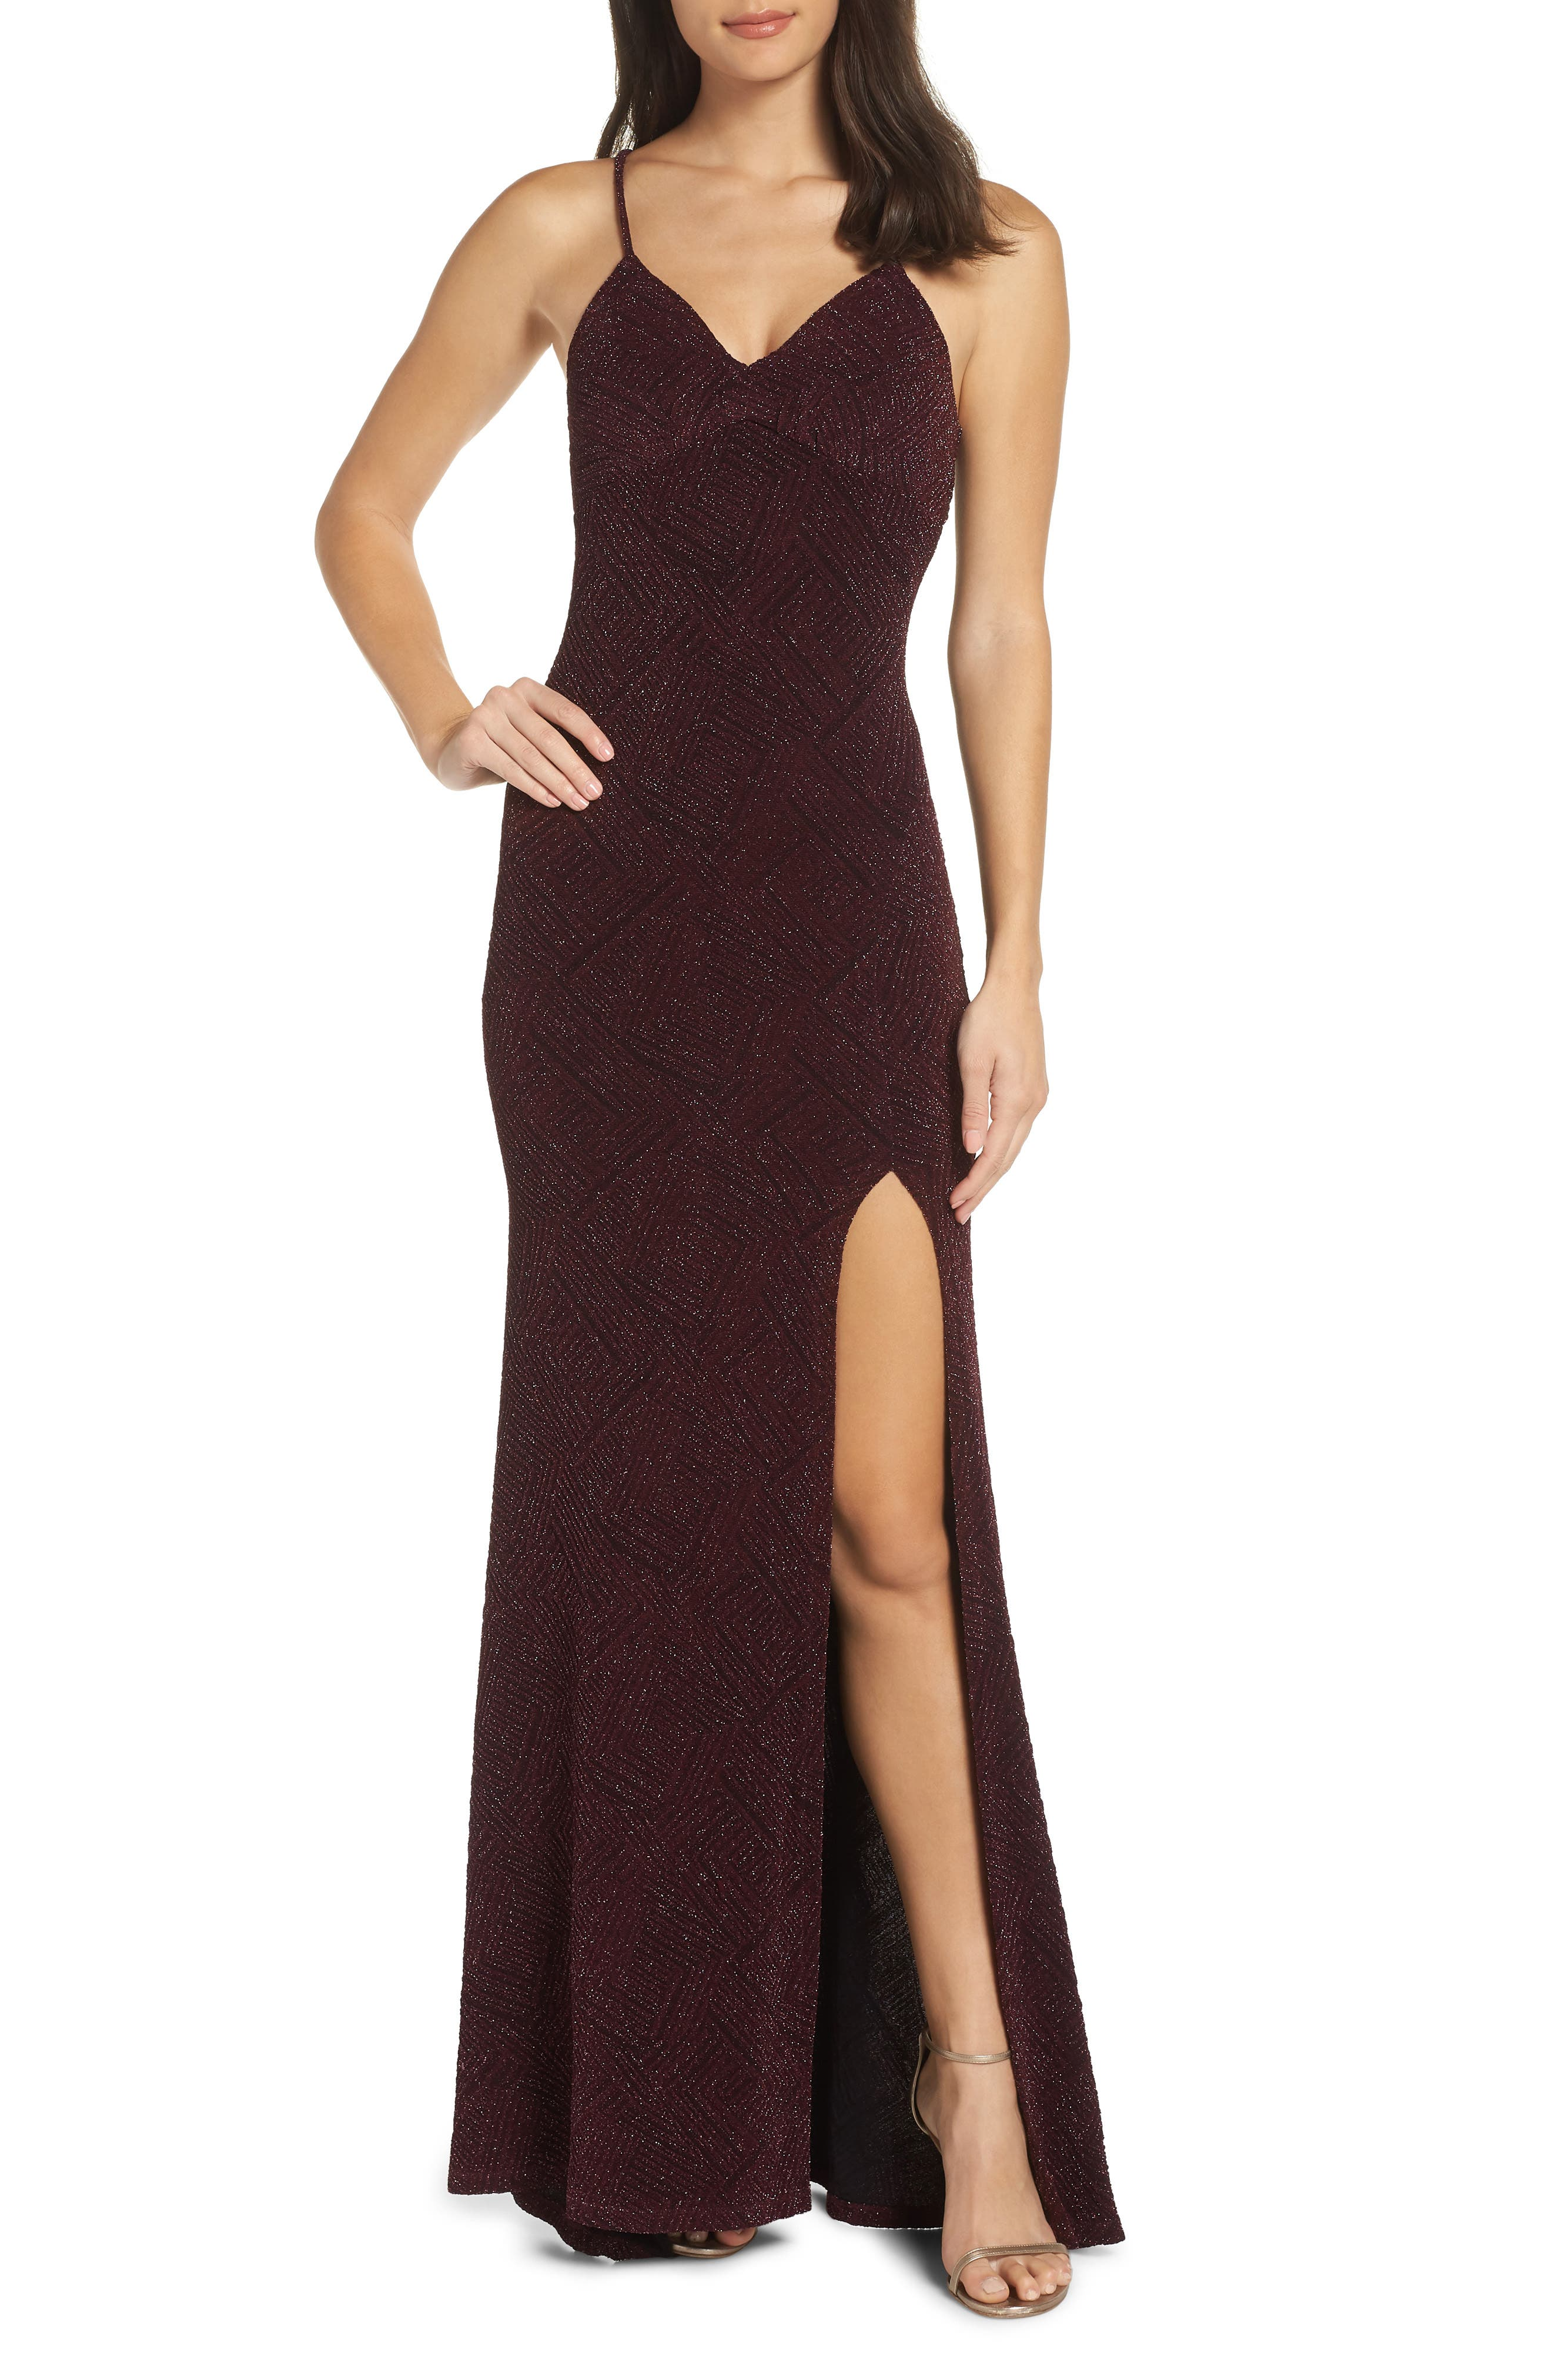 Sequin Hearts Metallic Knit Gown